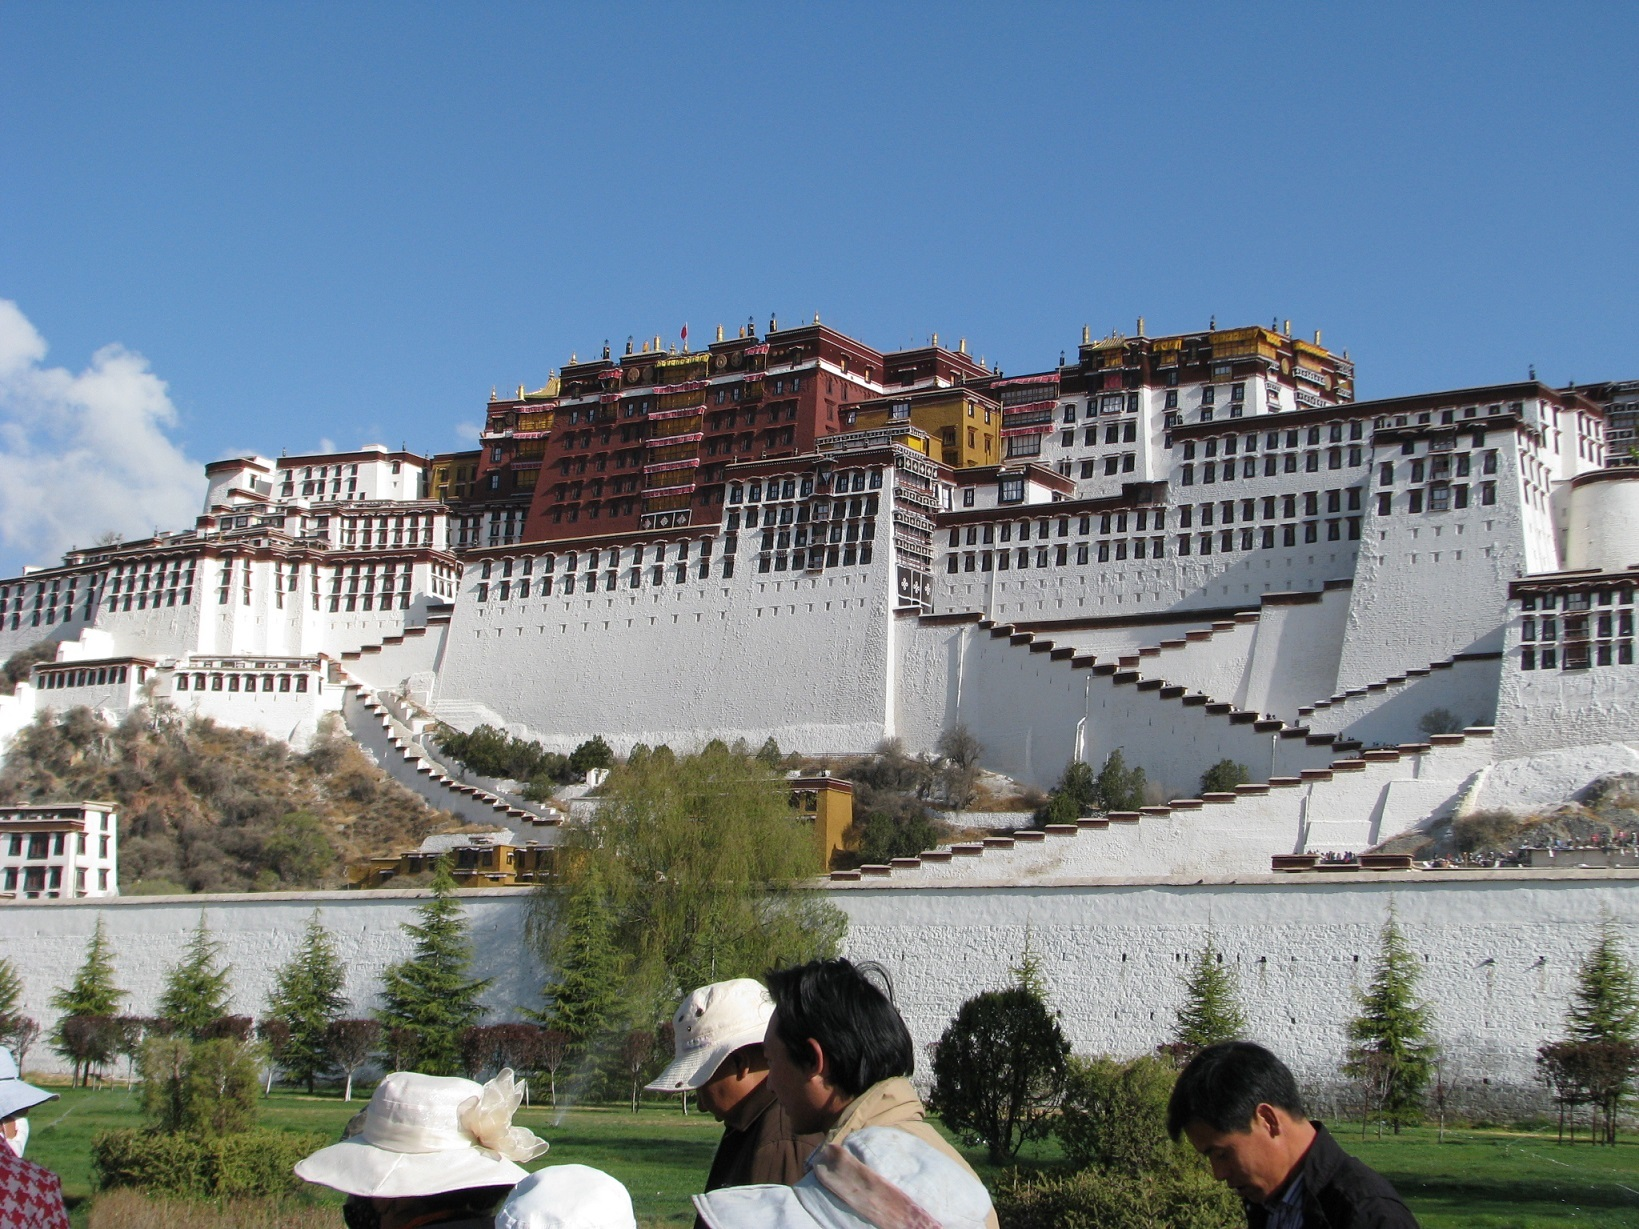 tibet-med-swed-asia-travels-342